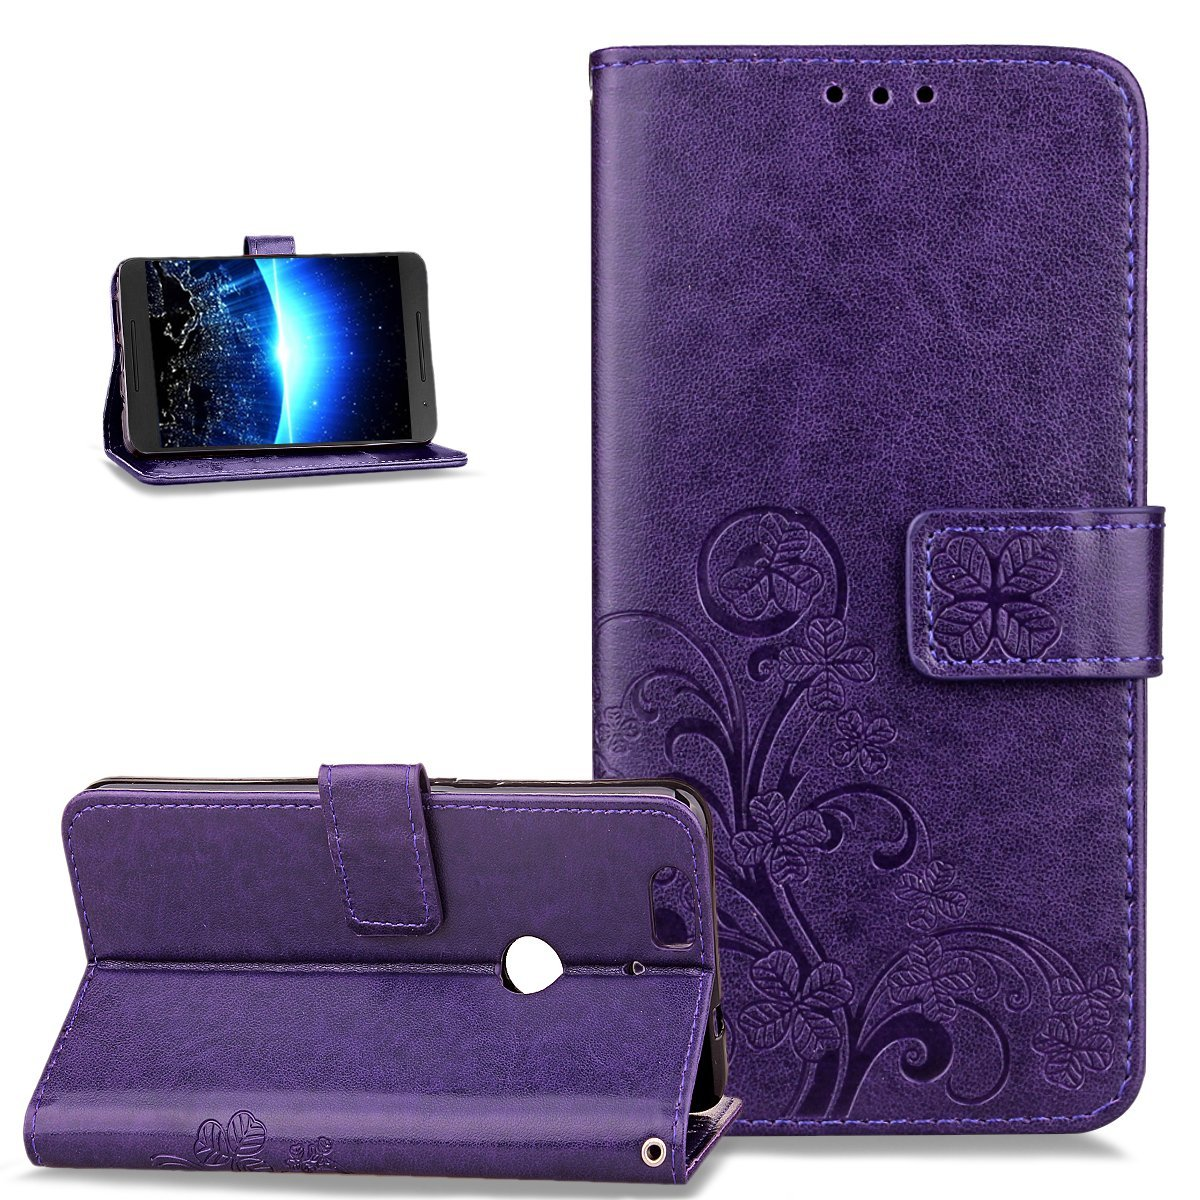 Huawei Nexus 6P Case,Wallet Case for Huawei Nexus 6P,ikasus Embossing Clover Flower Premium PU Leather Flip Wallet Pouch with Stand Credit Card Holders Case Cover for Huawei Nexus 6P,Purple